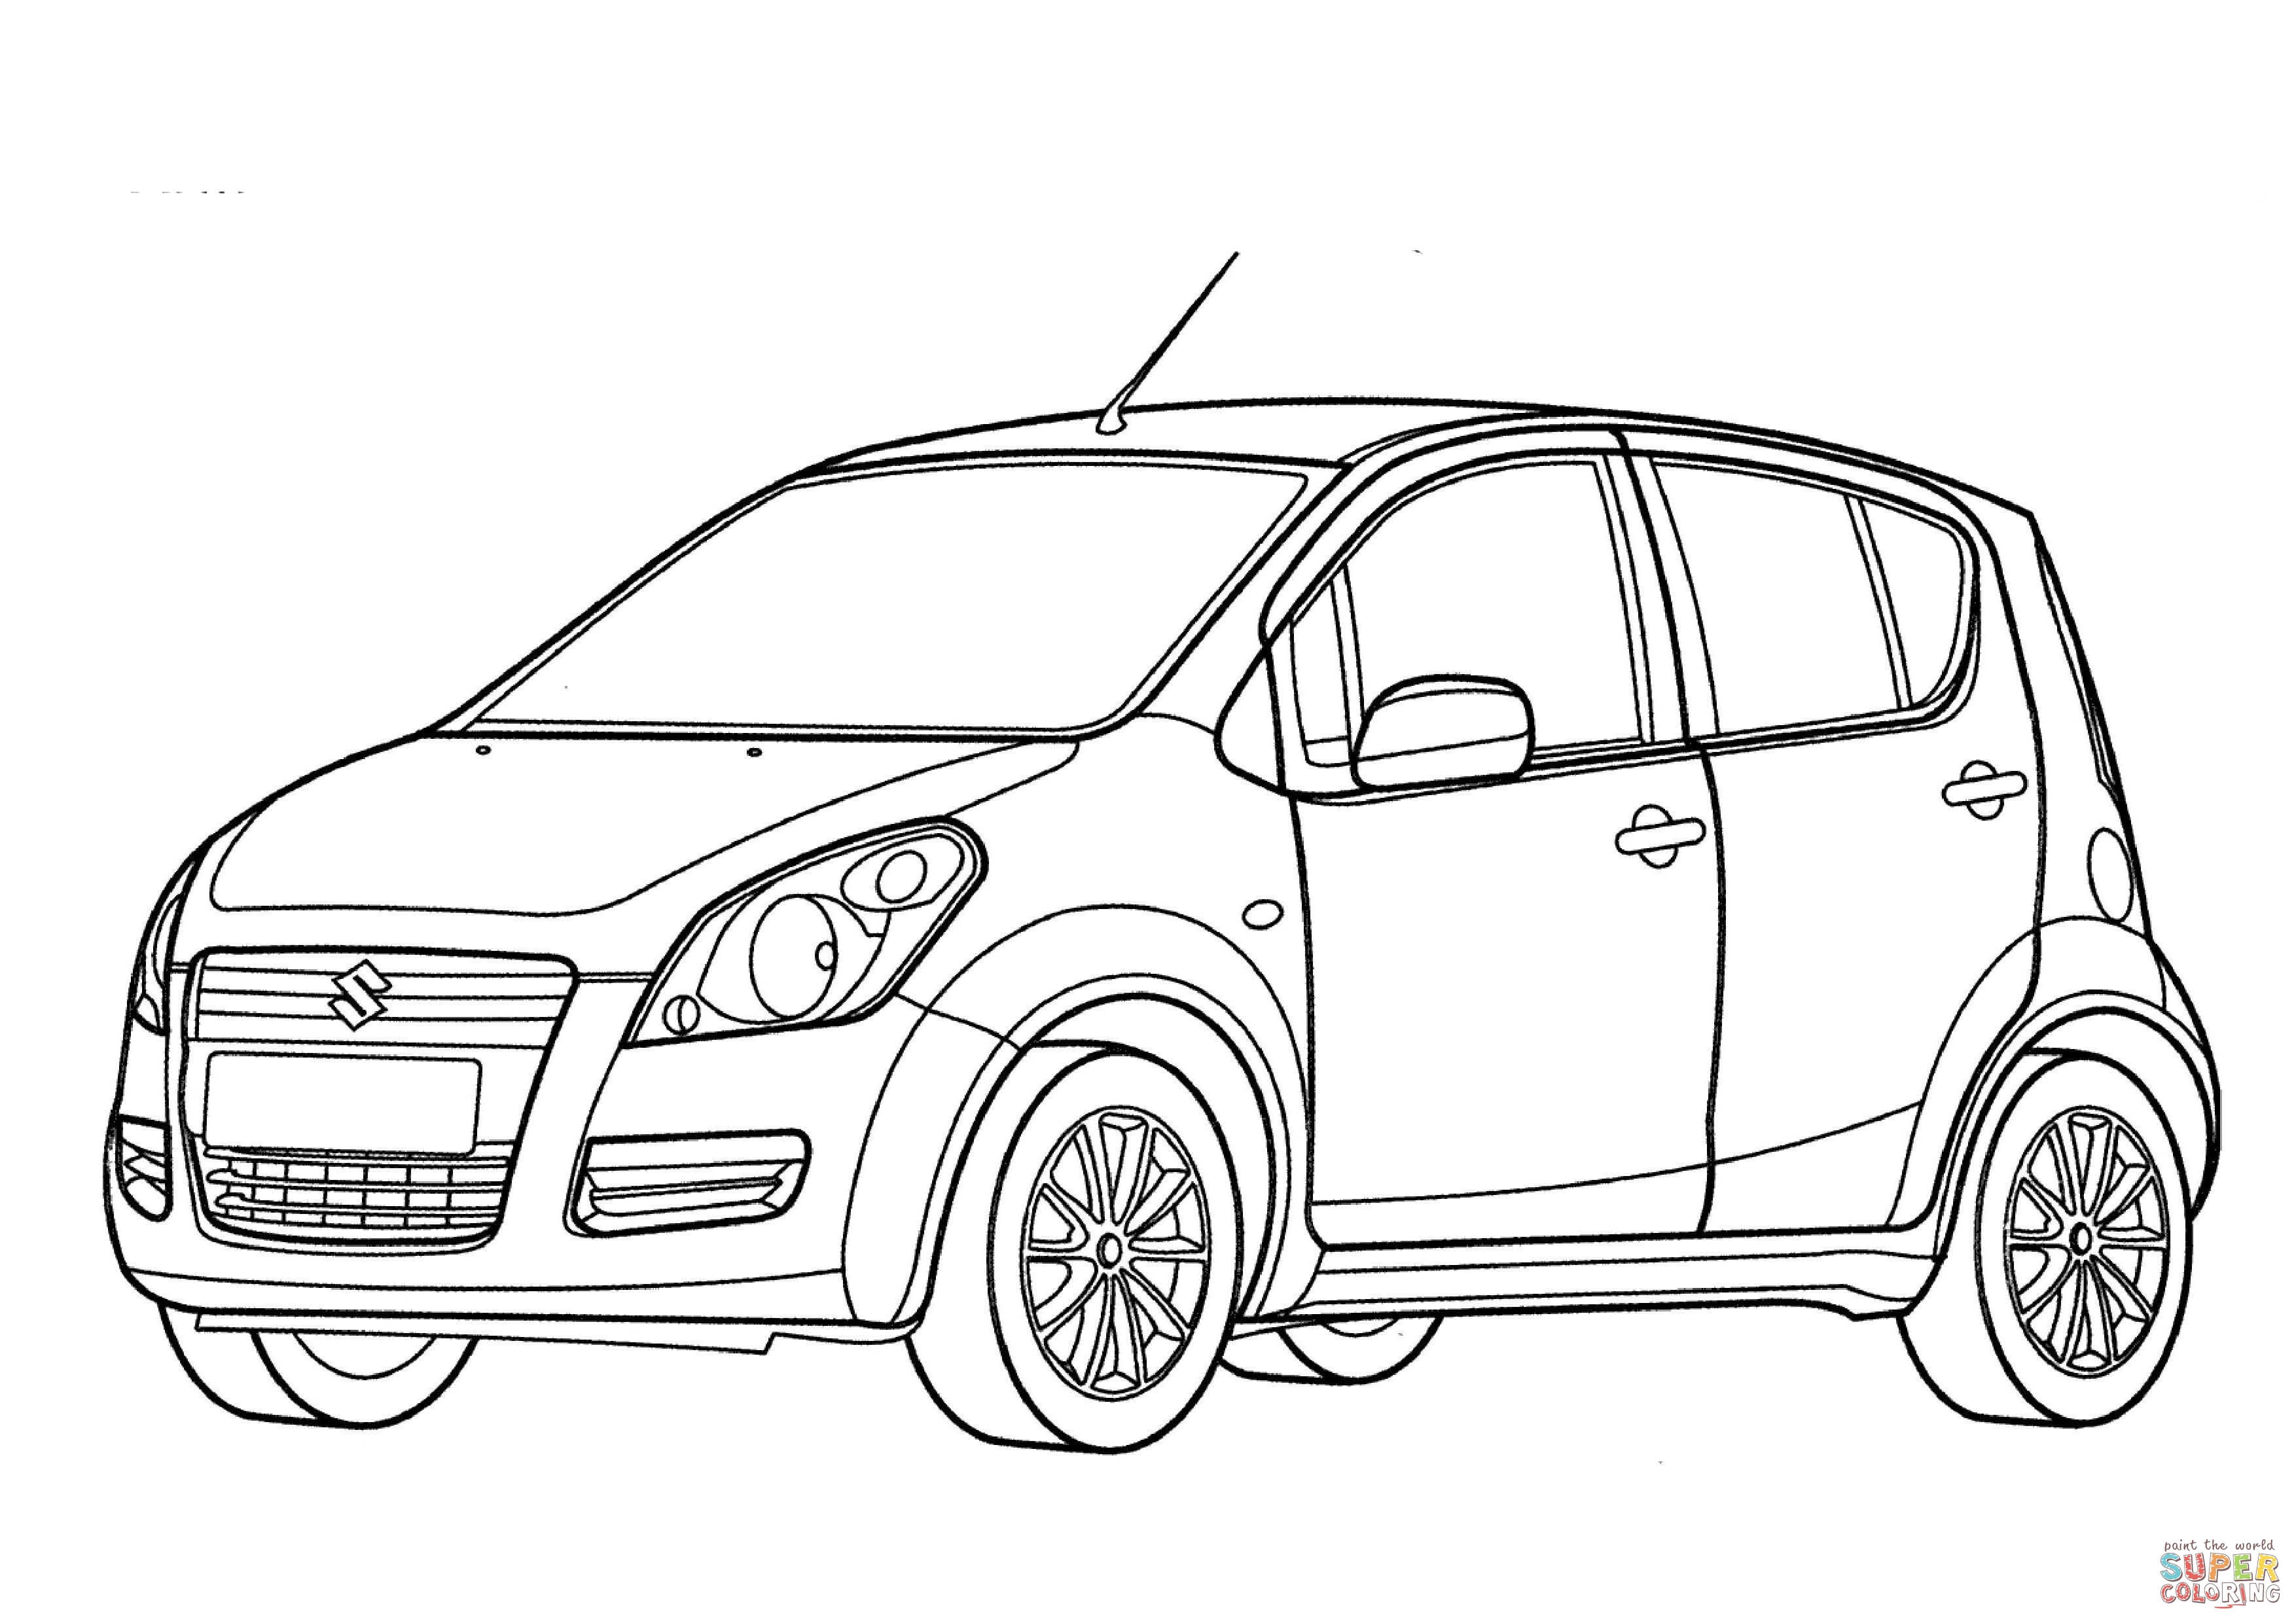 3508x2480 Suzuki Splash Coloring Page Free Printable Coloring Pages